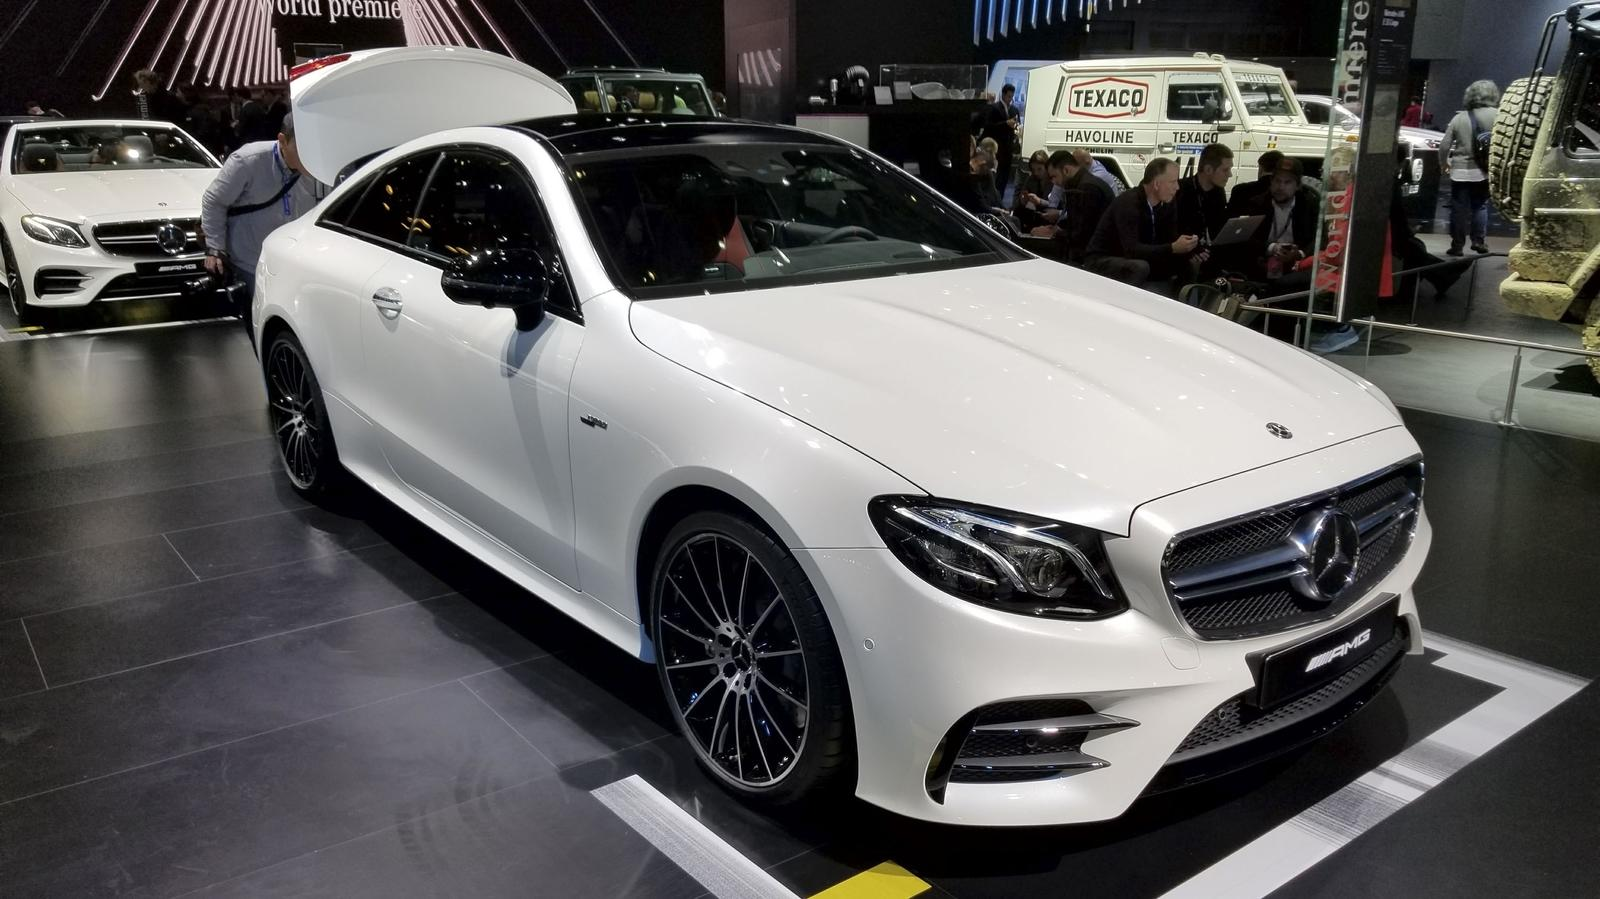 mercedes amg e53 coupe hits detroit as the most powerful two door e class yet news top speed. Black Bedroom Furniture Sets. Home Design Ideas